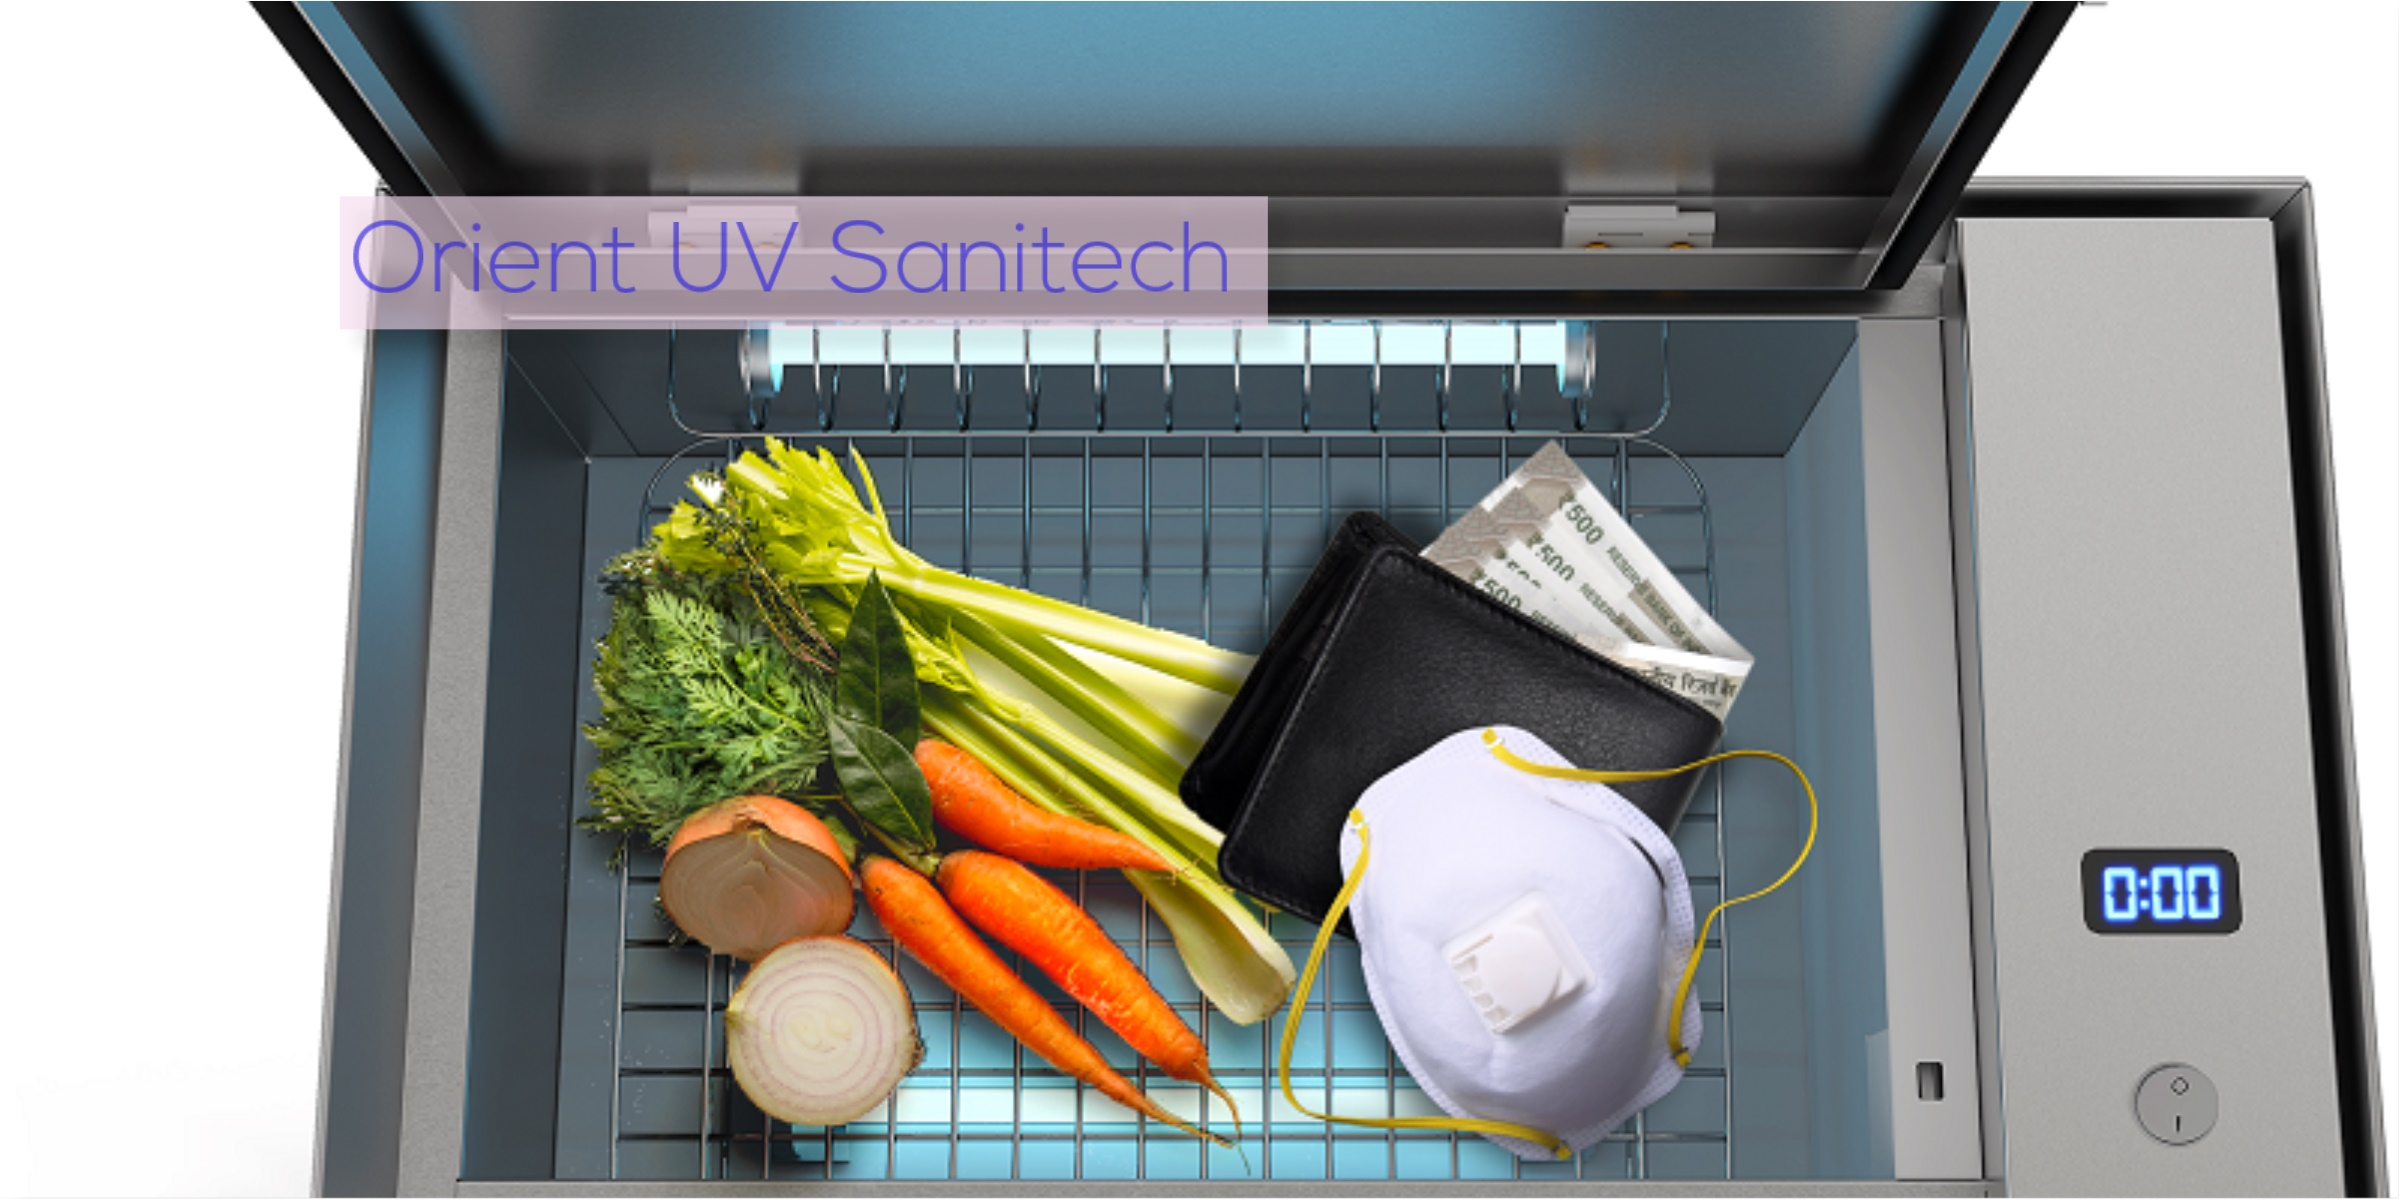 Orient Uv Sanitech - All You Need To Know About This Sanitisation Device